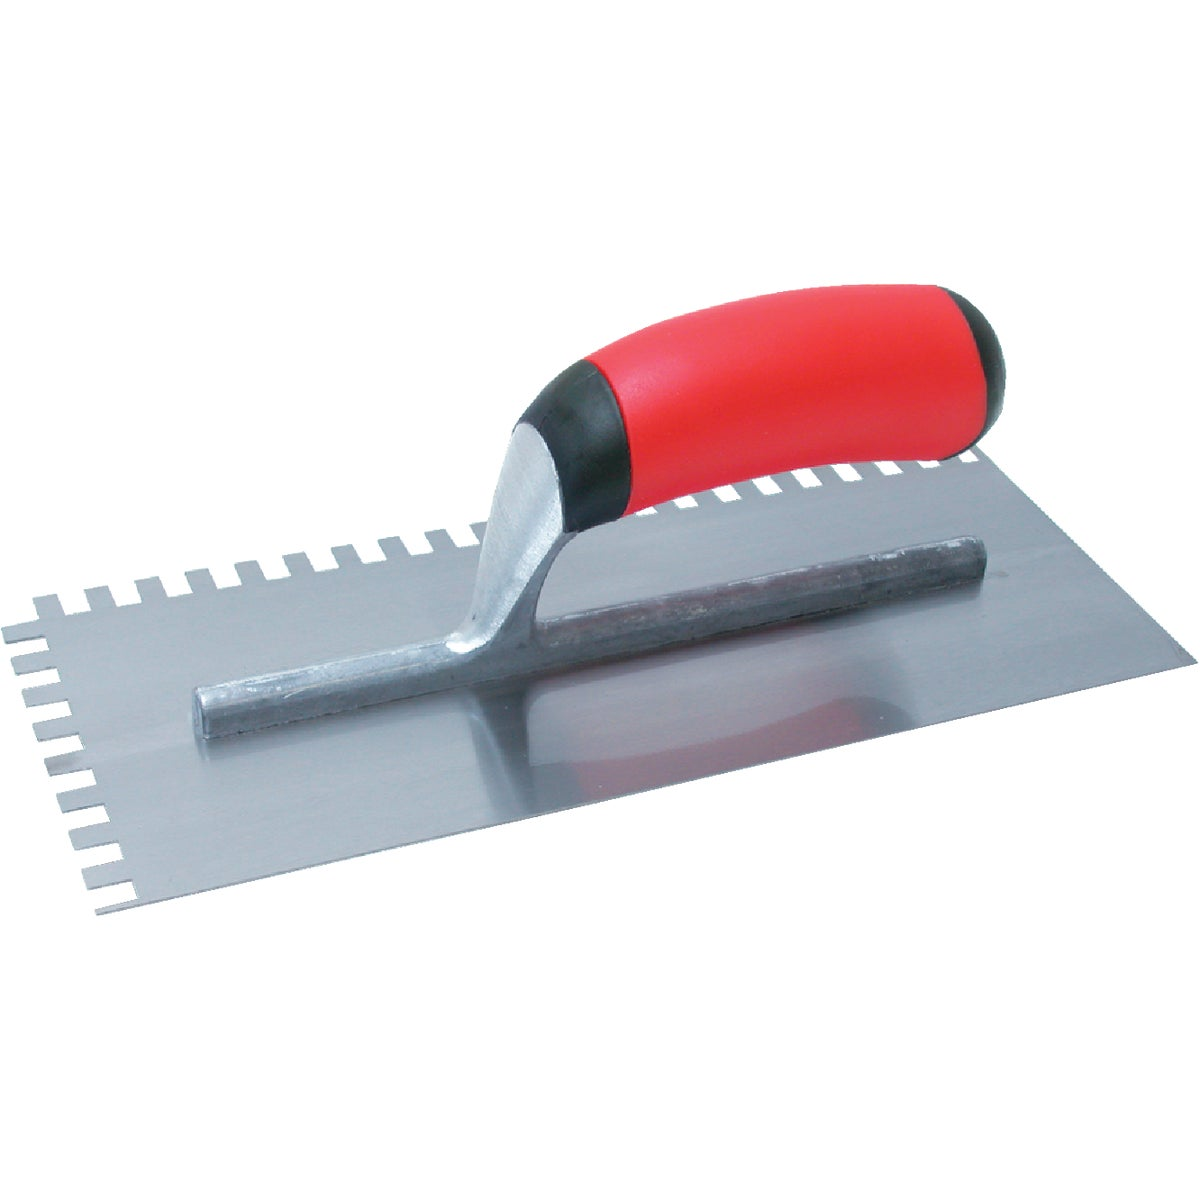 "NT672 1/4"" NOTCH TROWEL"